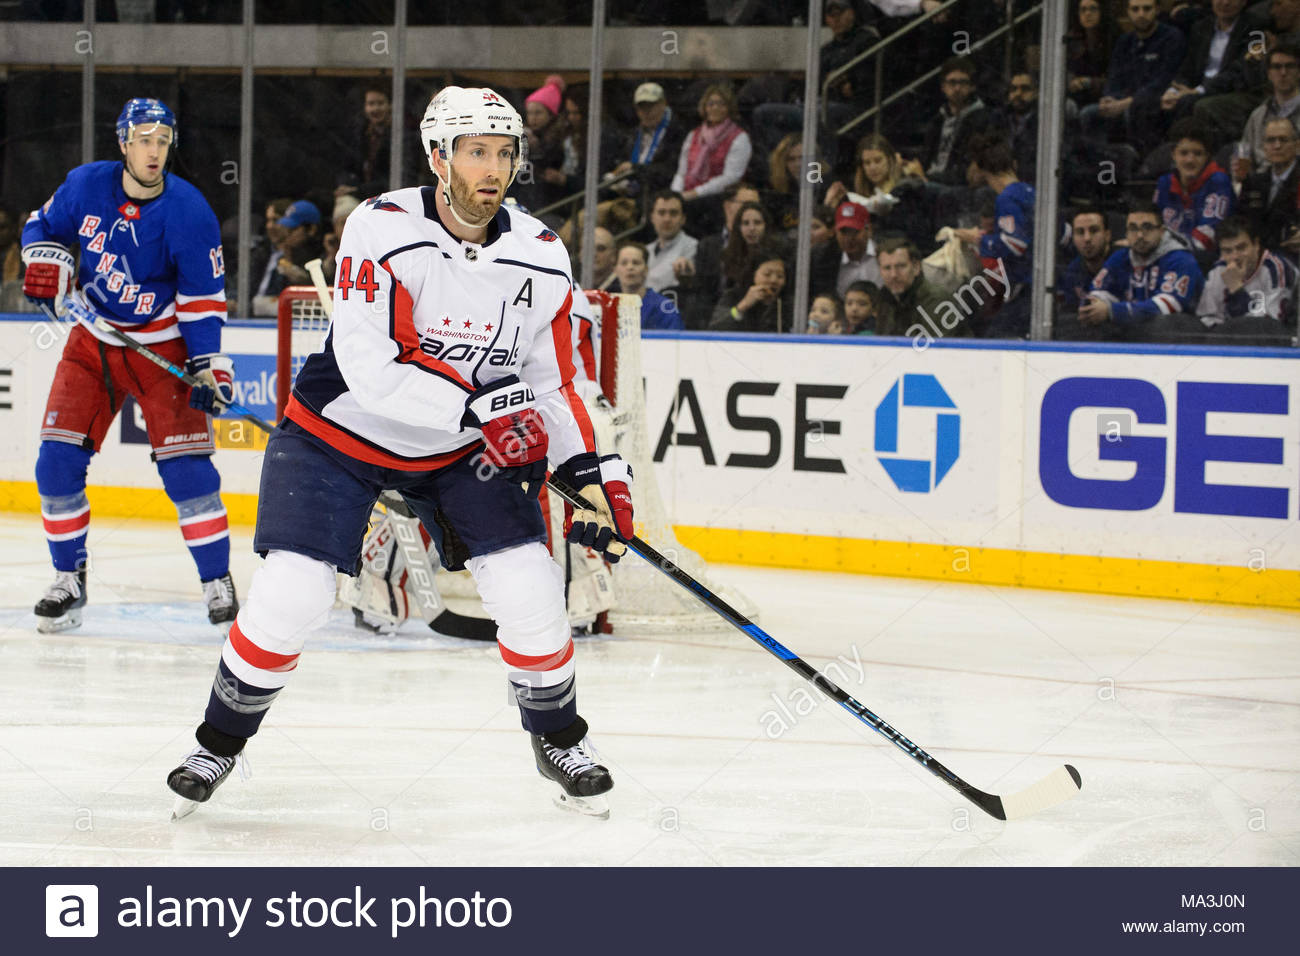 Washington Capitals defenseman Brooks Orpik (44) is in action during the  game between The New York Rangers and The Washington Capitals at Madison  Square ... a0085ab4287